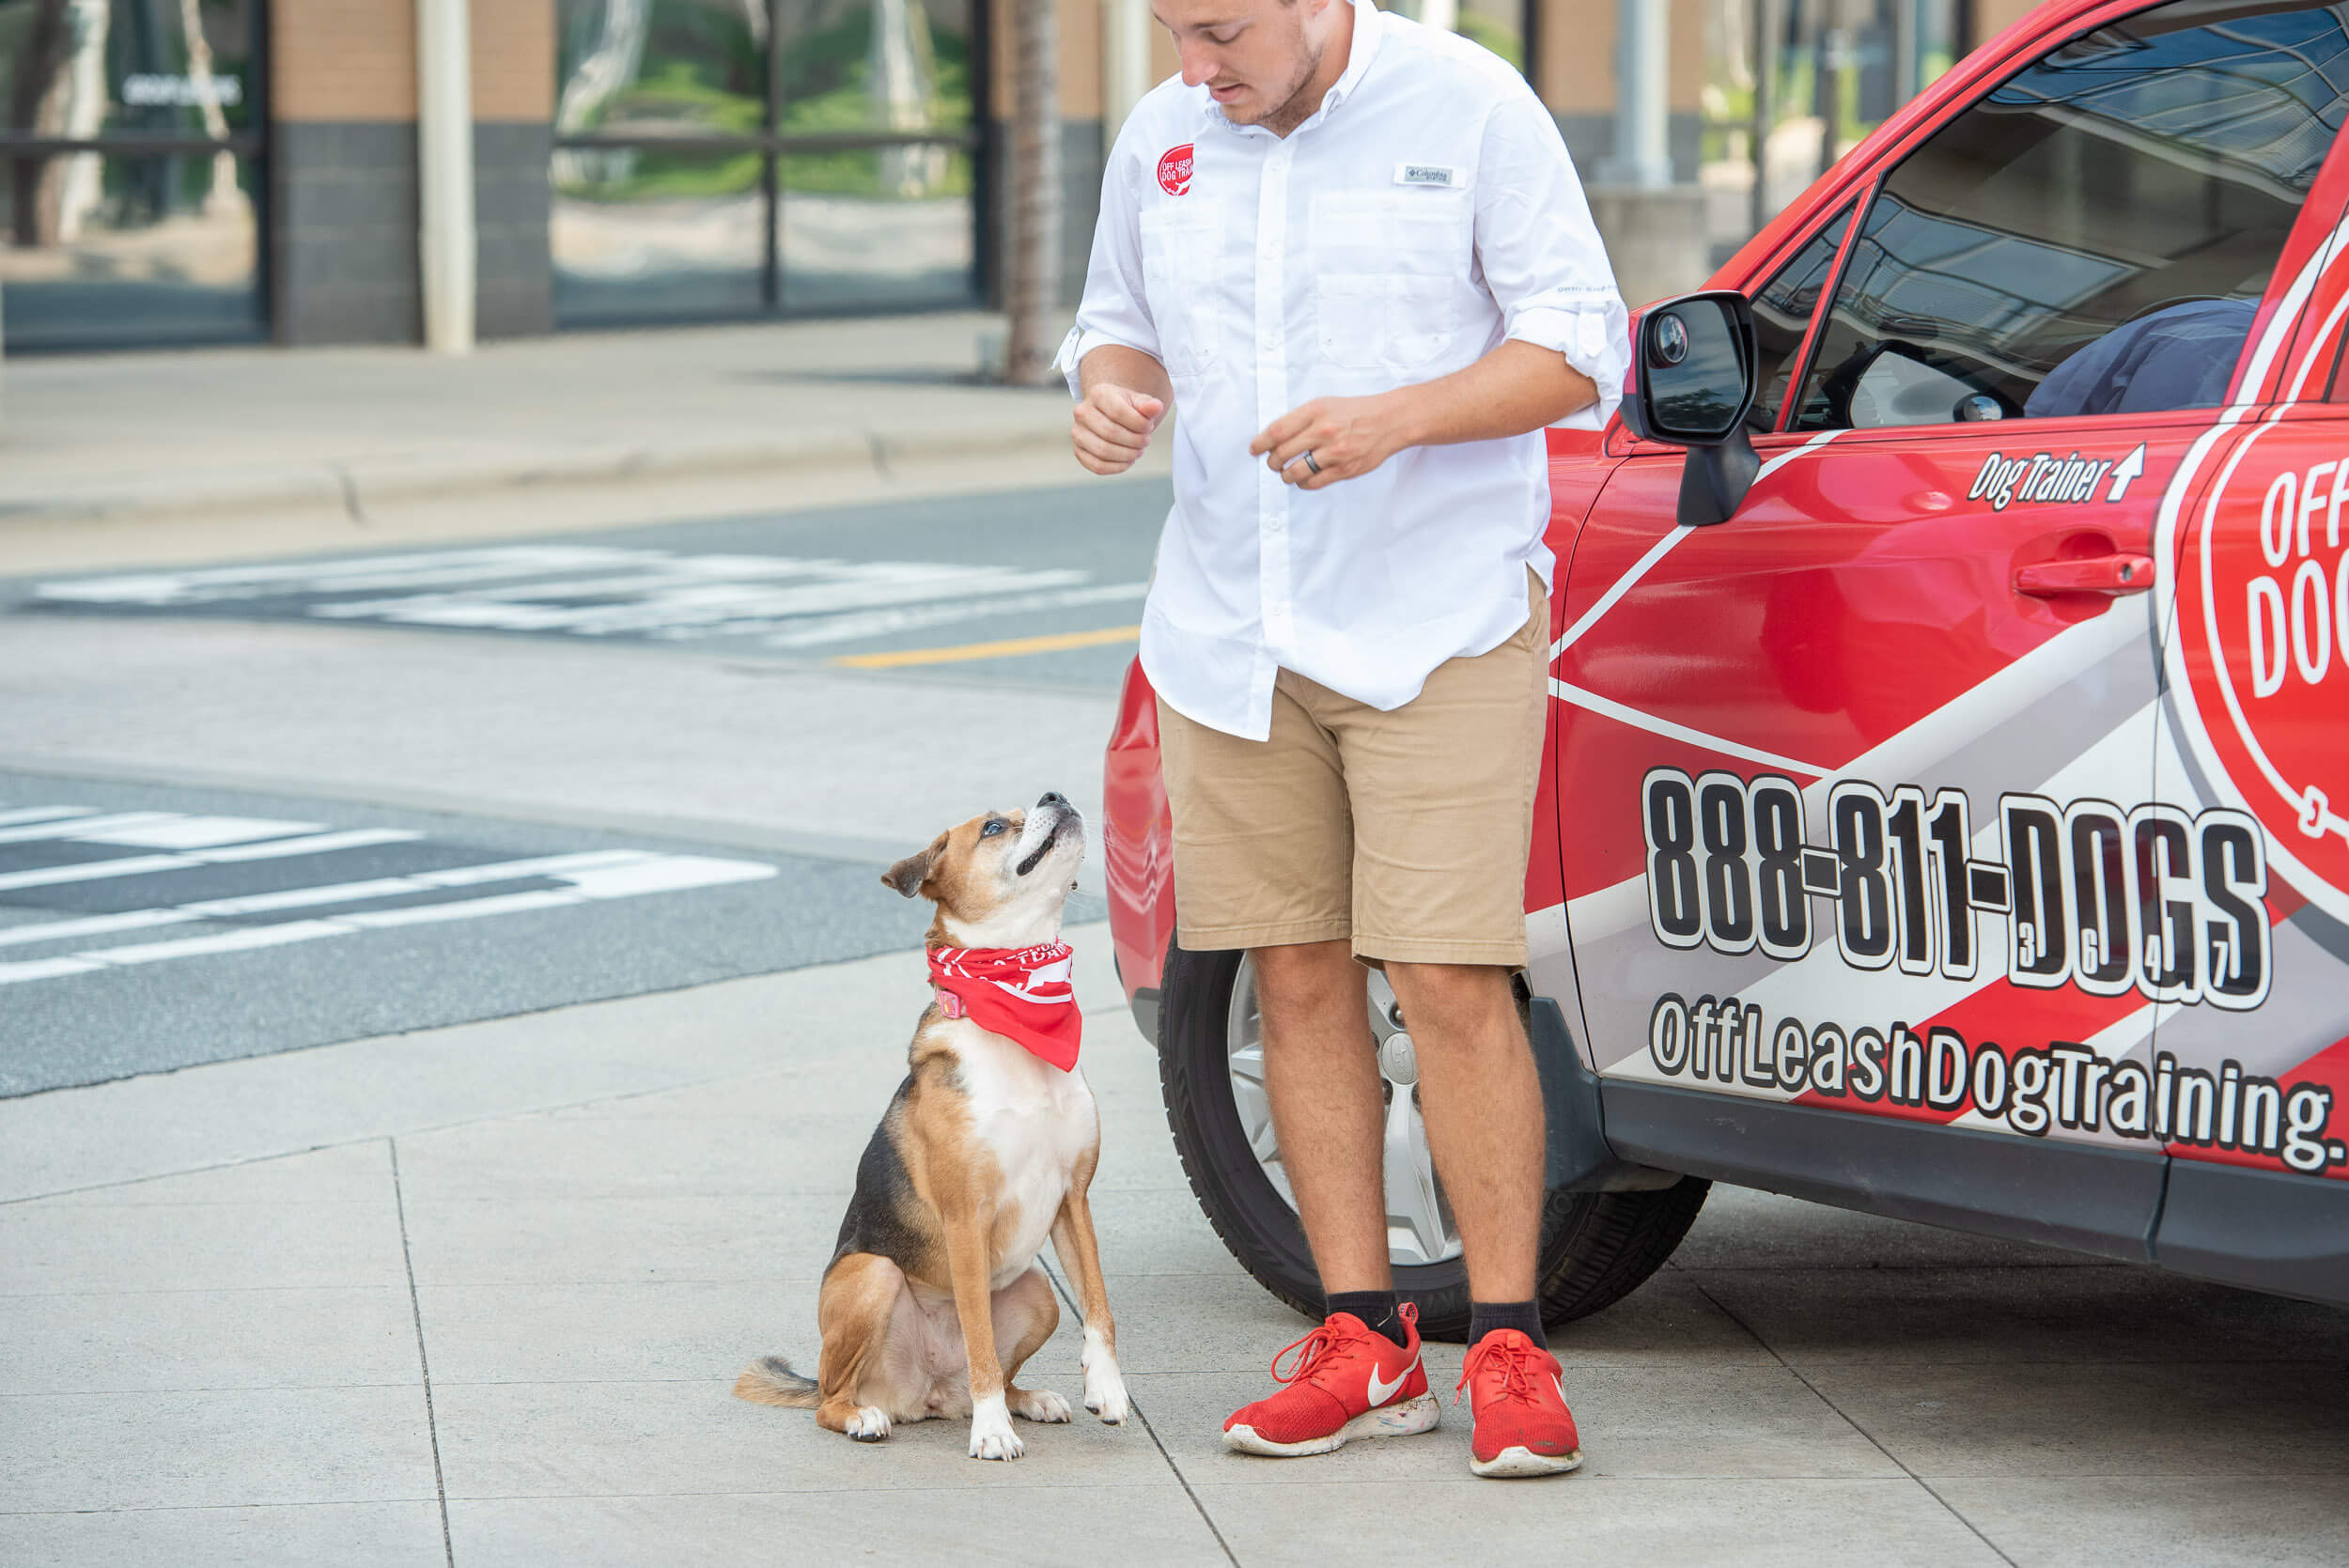 Charlotte dog trainer working with small brown and white dog next to Off Leash Dog Training car